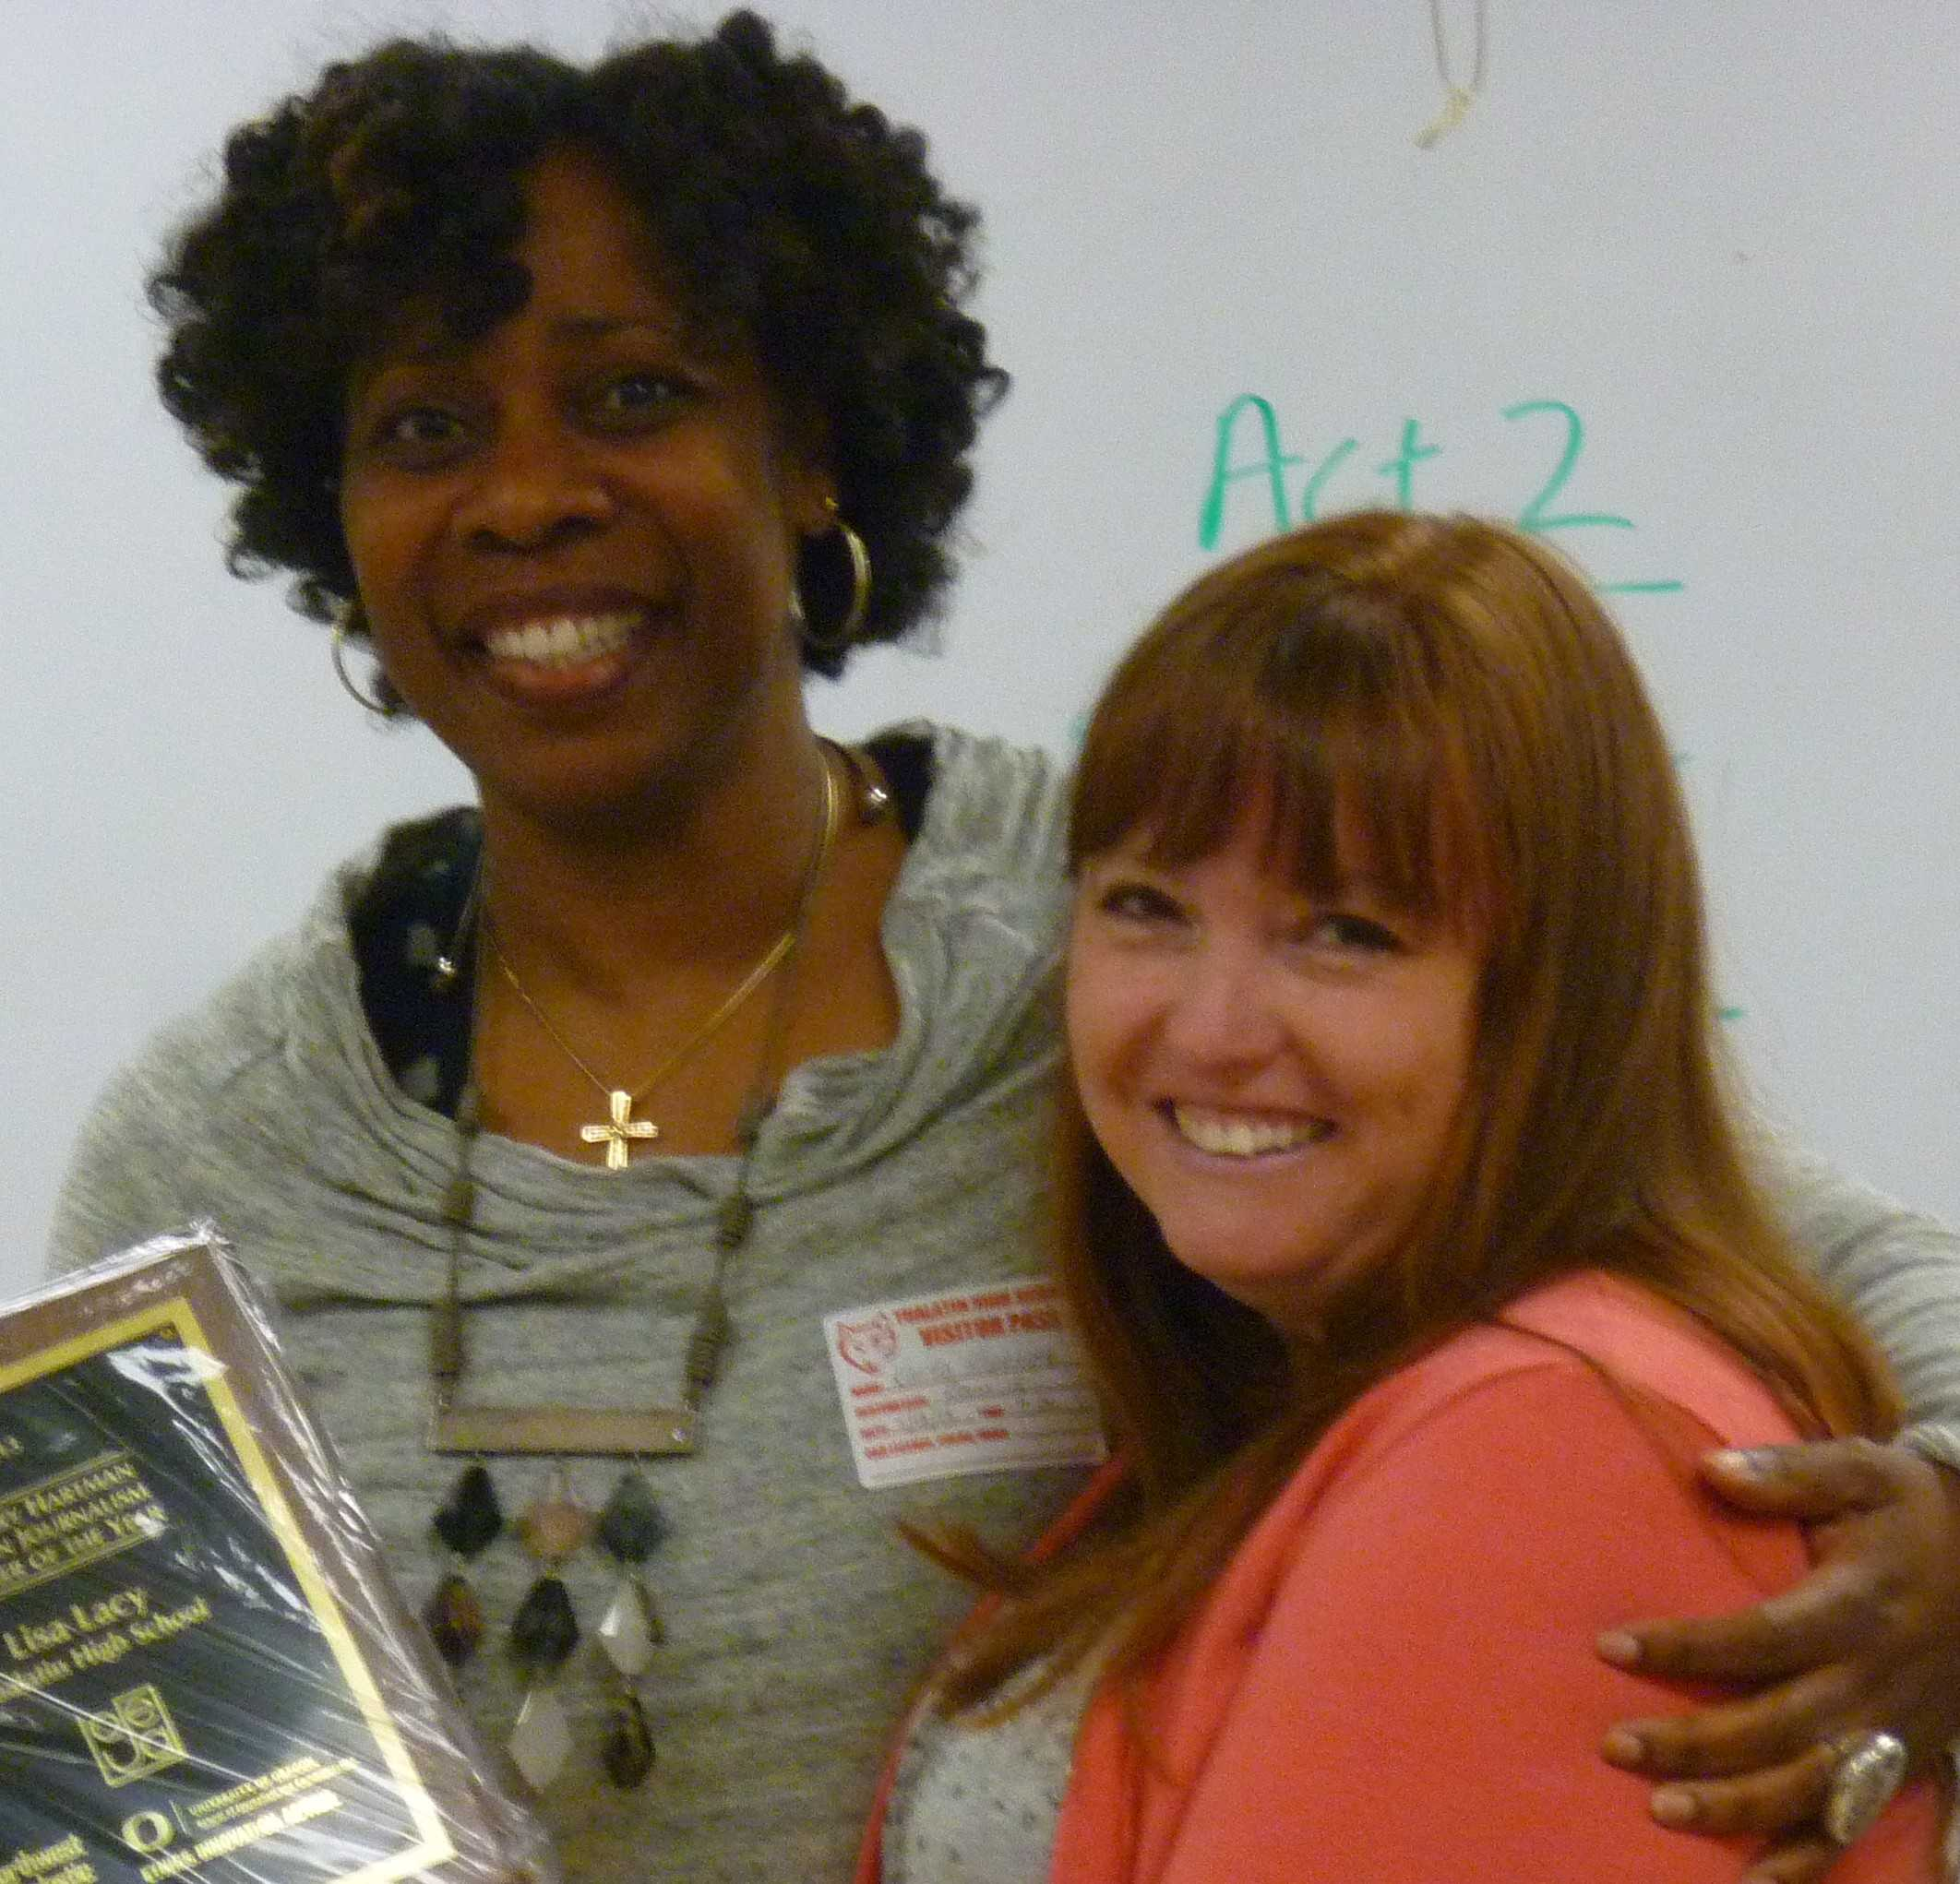 Lisa Lacey, the journalism teacher at Tualatin H.S., receives the 2013 Mary Hartman Oregon Journalism Teacher Of The Year Award from Northwest Scholastic Press Association Executive Director Karla Kennedy. (Photo by Rob Melton)